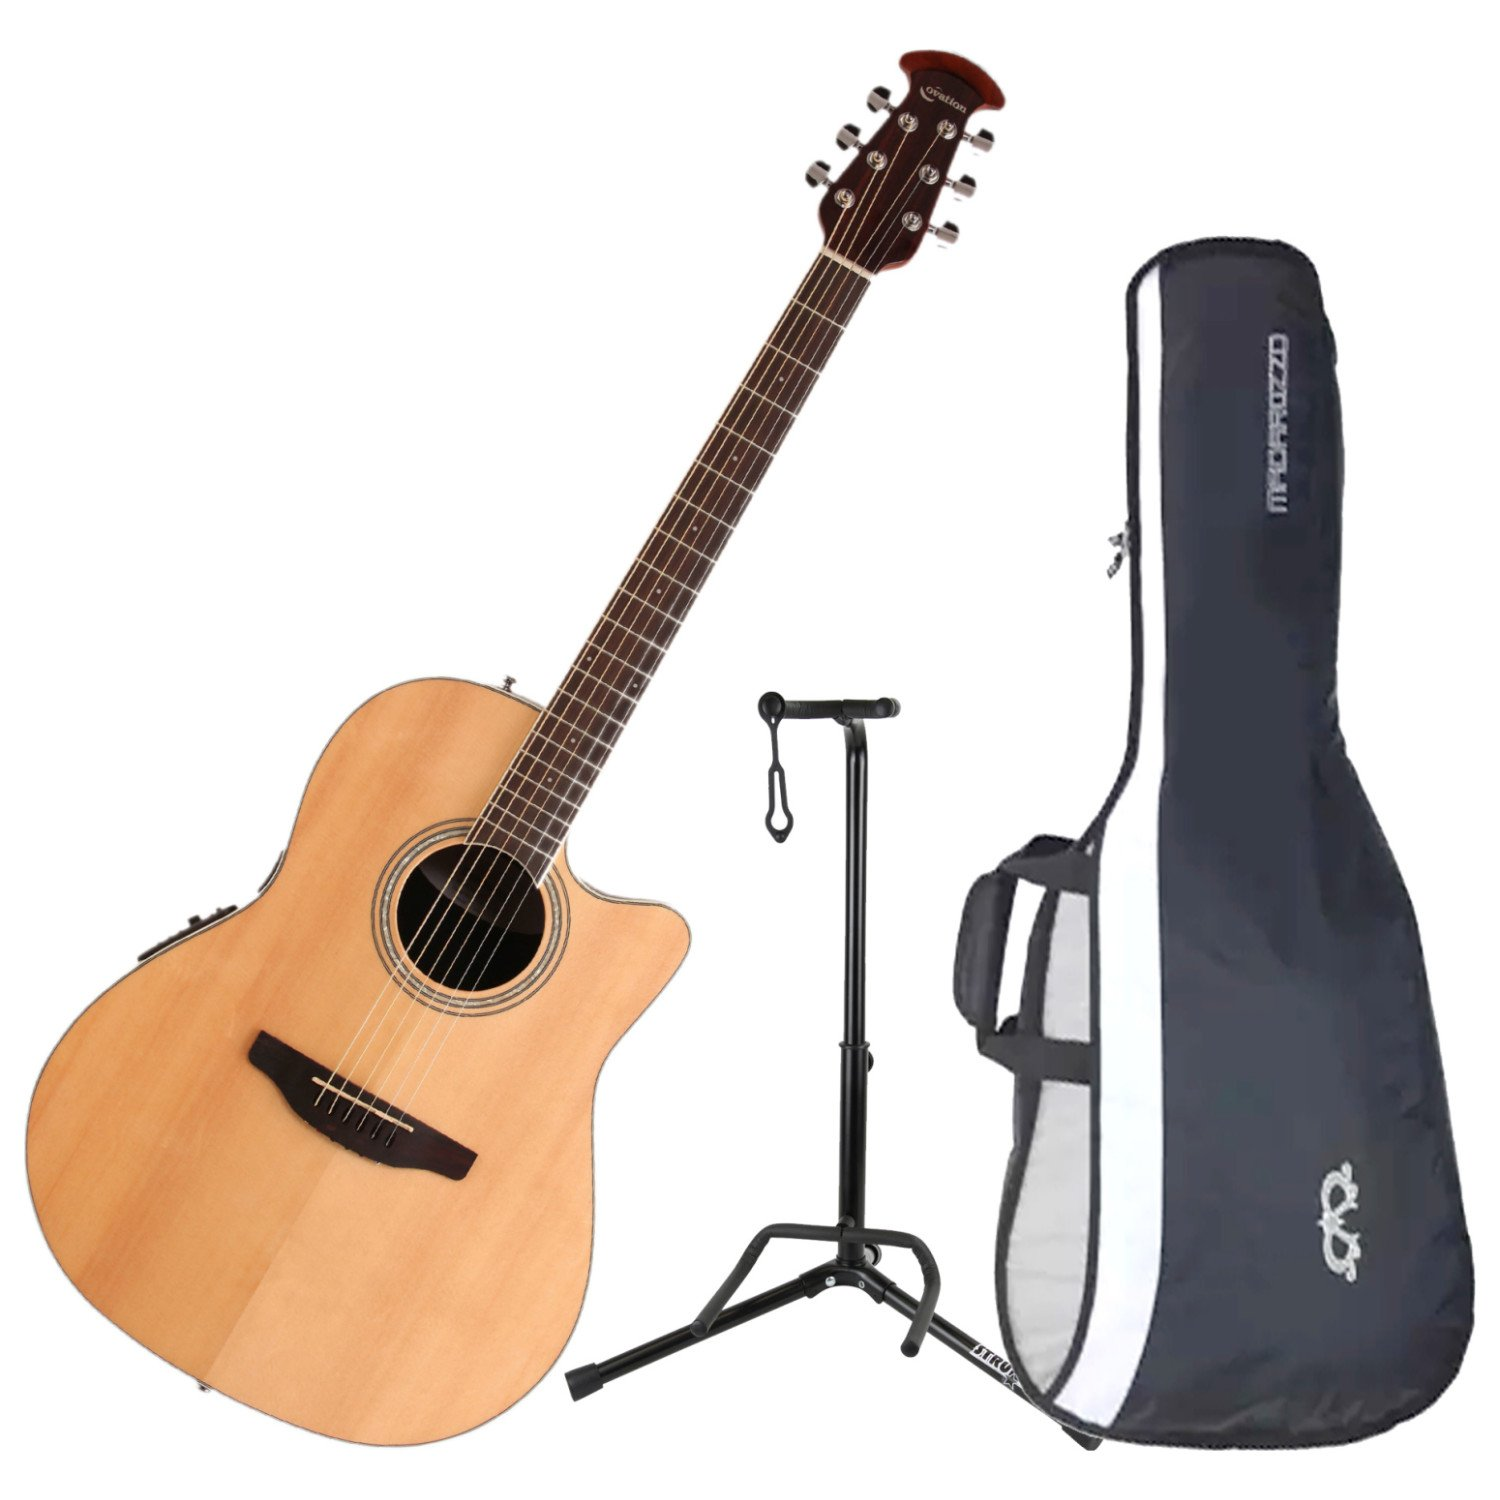 Ovation CS24-4 Celebrity Standard Mid-Depth Natural Acoustic/Electric Guitar with Gig Bag and Guitar Stand by Ovation